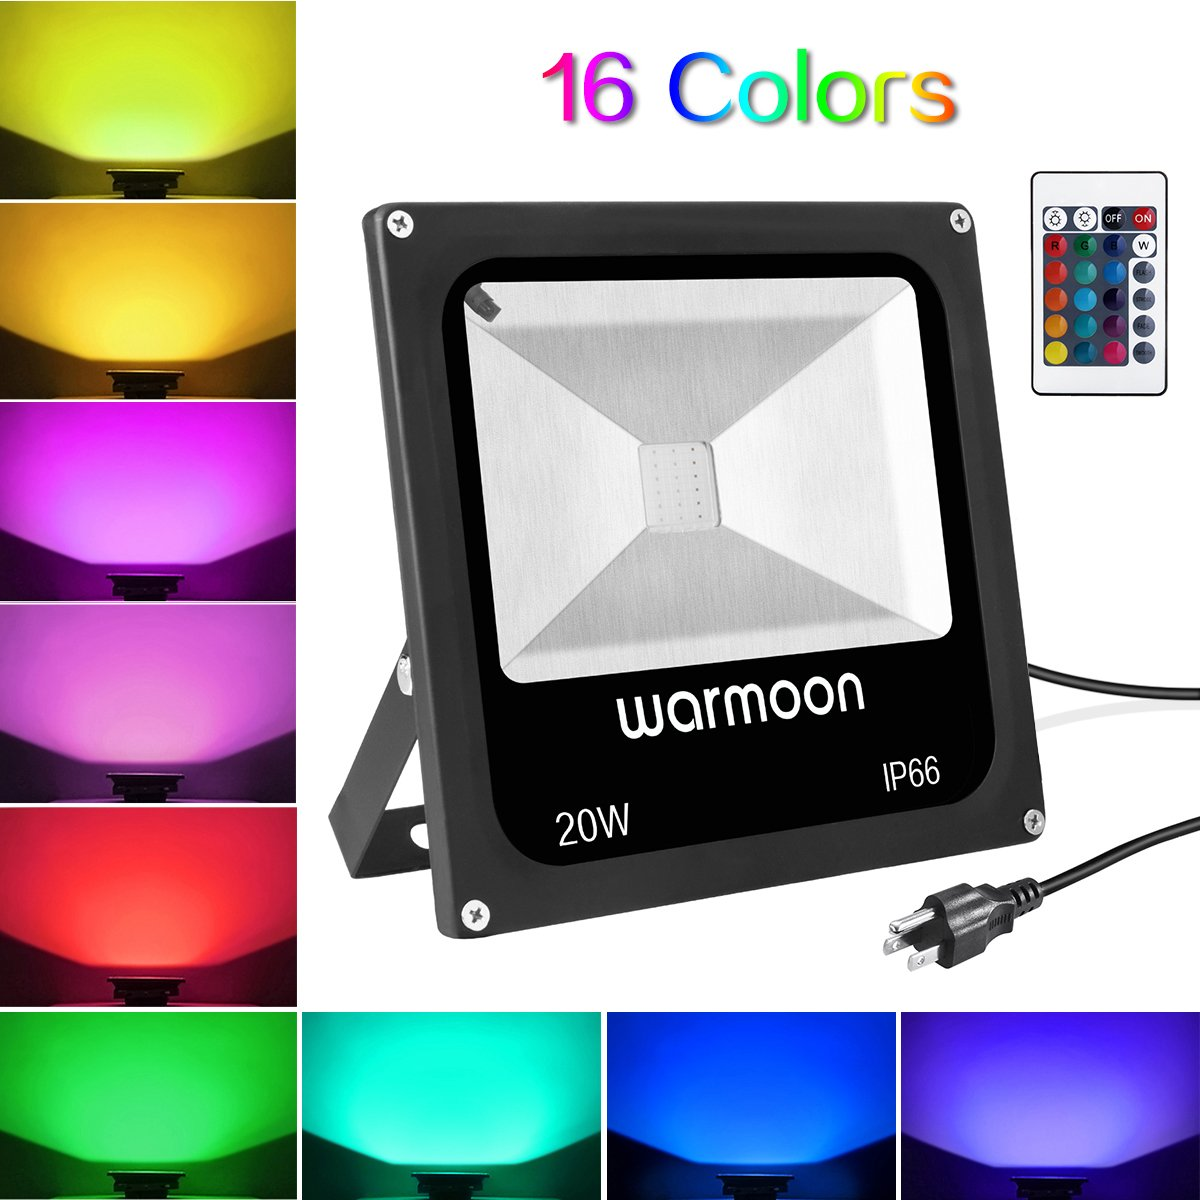 Warmoon Outdoor Flood Light 20W RGB Waterproof IP66 Dimmable Color Changing LED Security Spotlight Light with Remote Control US 3-Plug for Home Garden Landscape Stage Yard